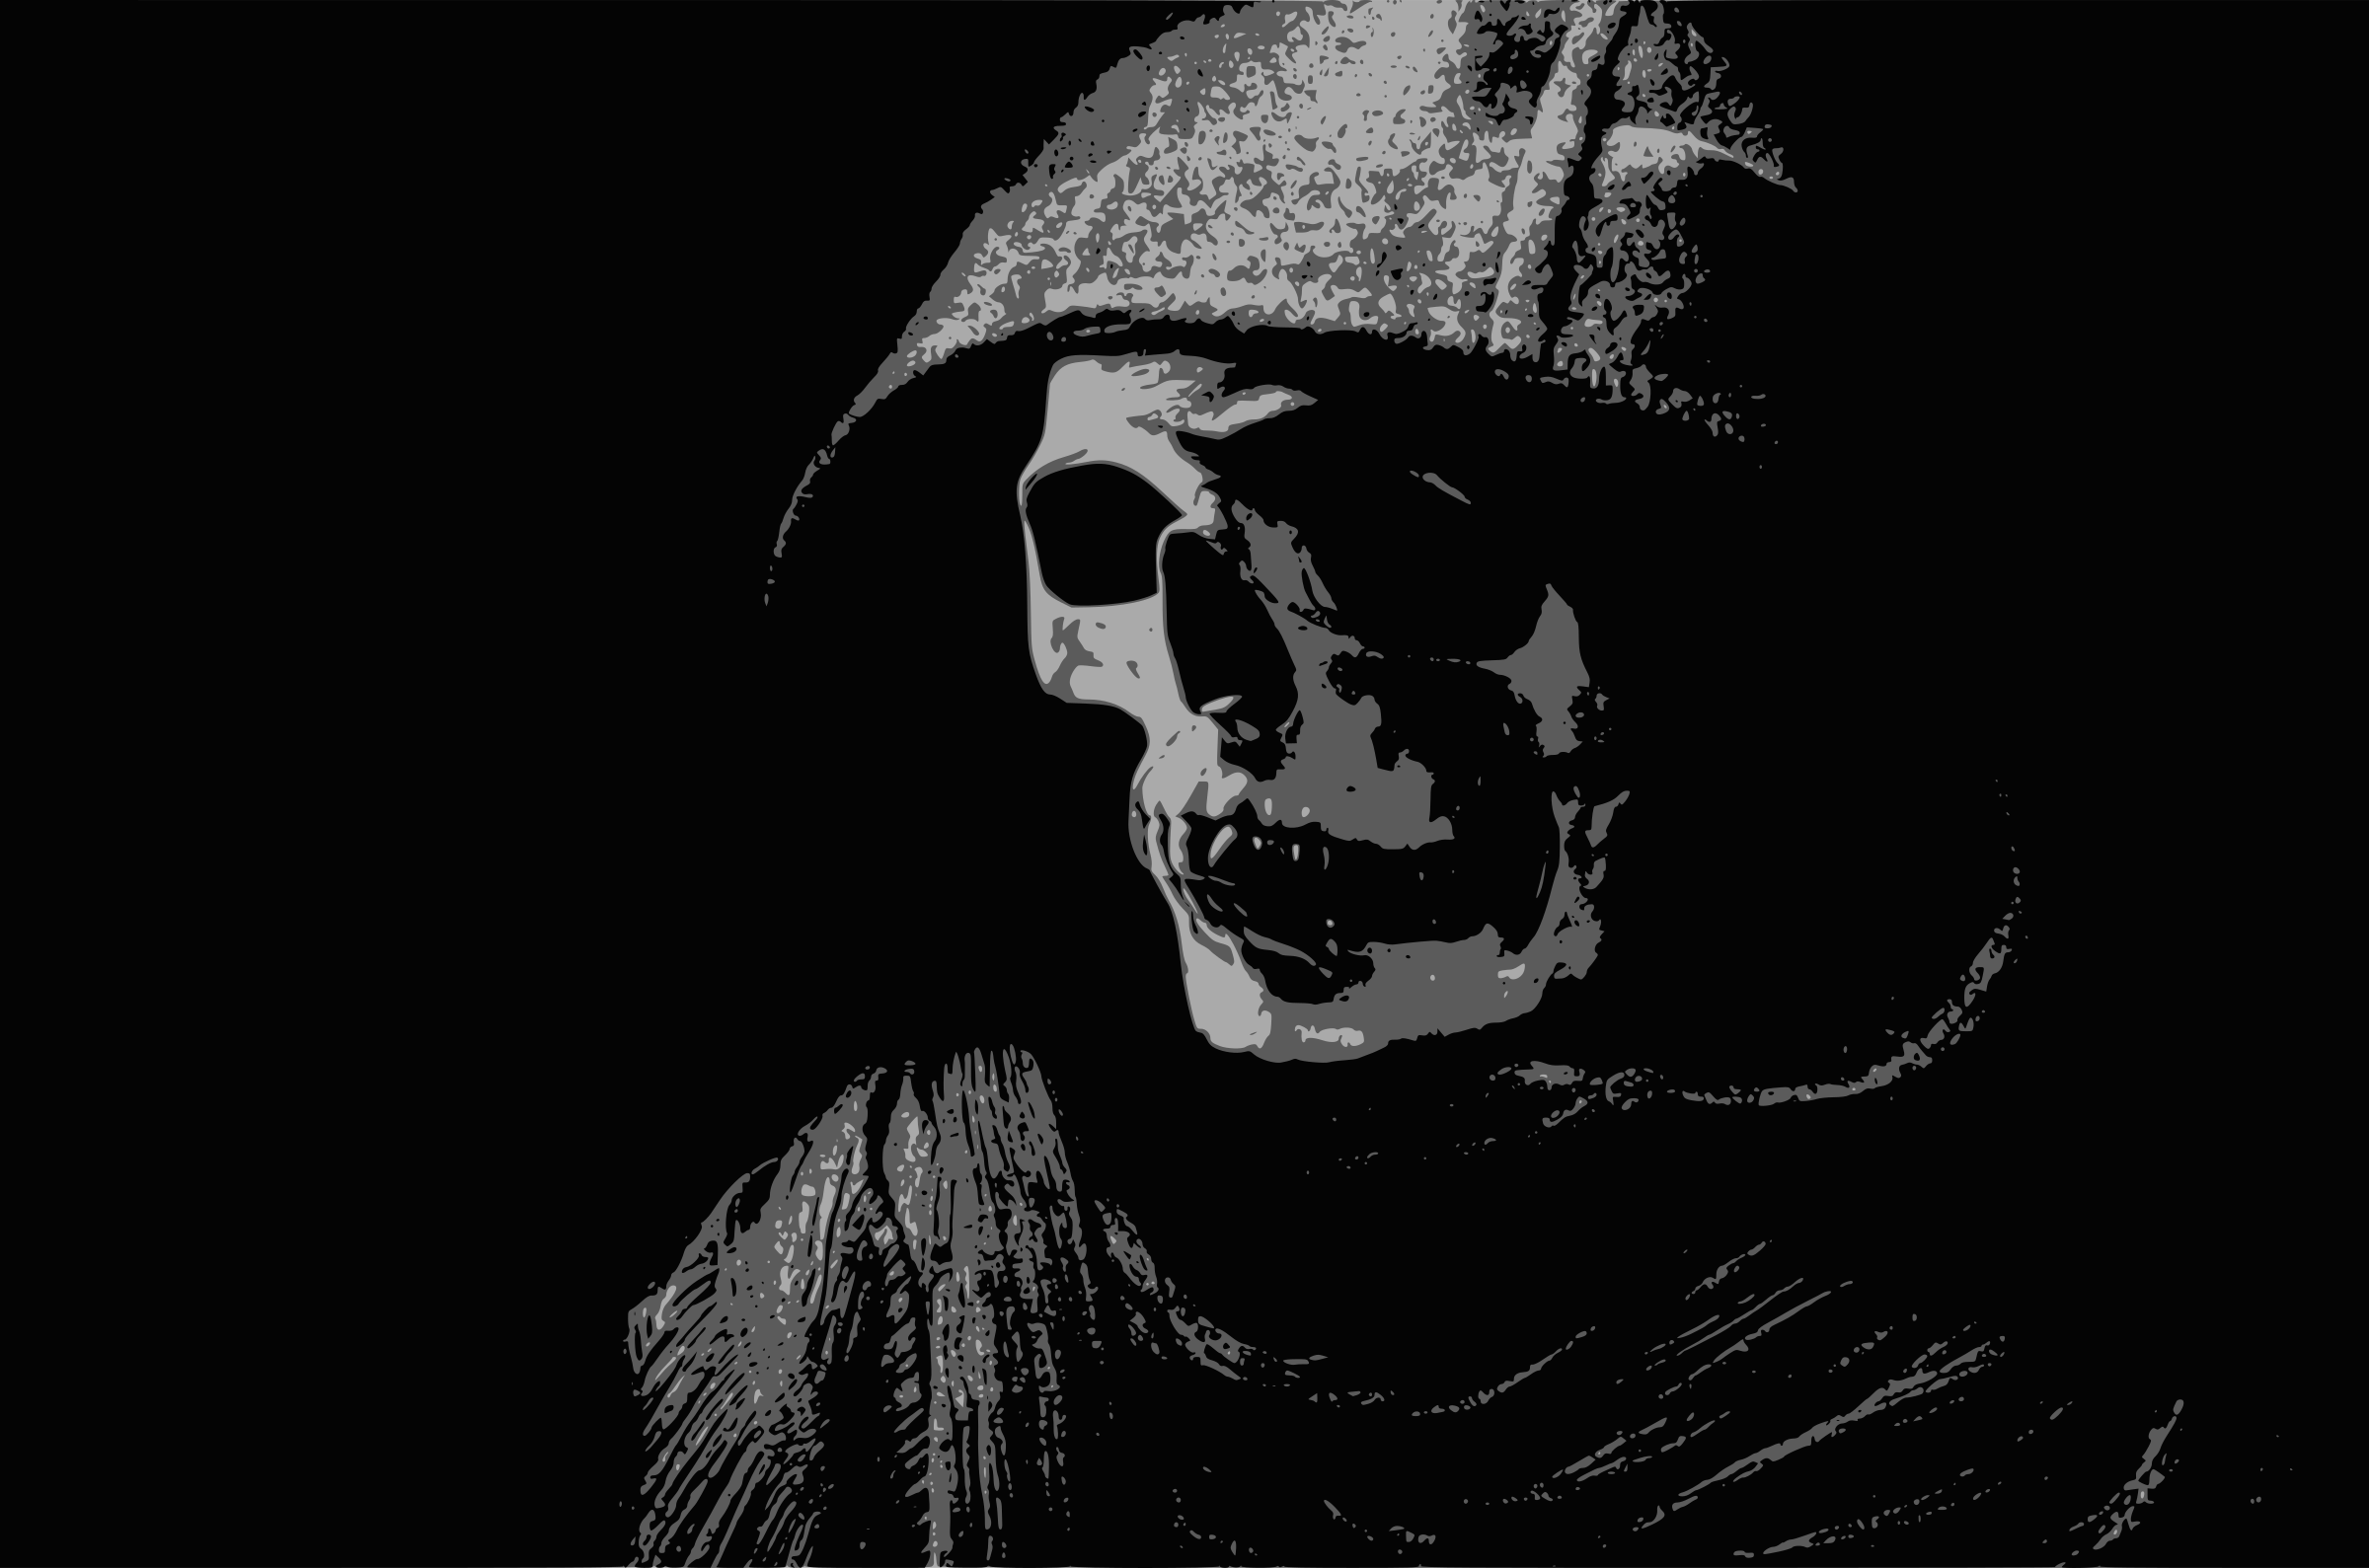 Grim reaper (full) by liftarn